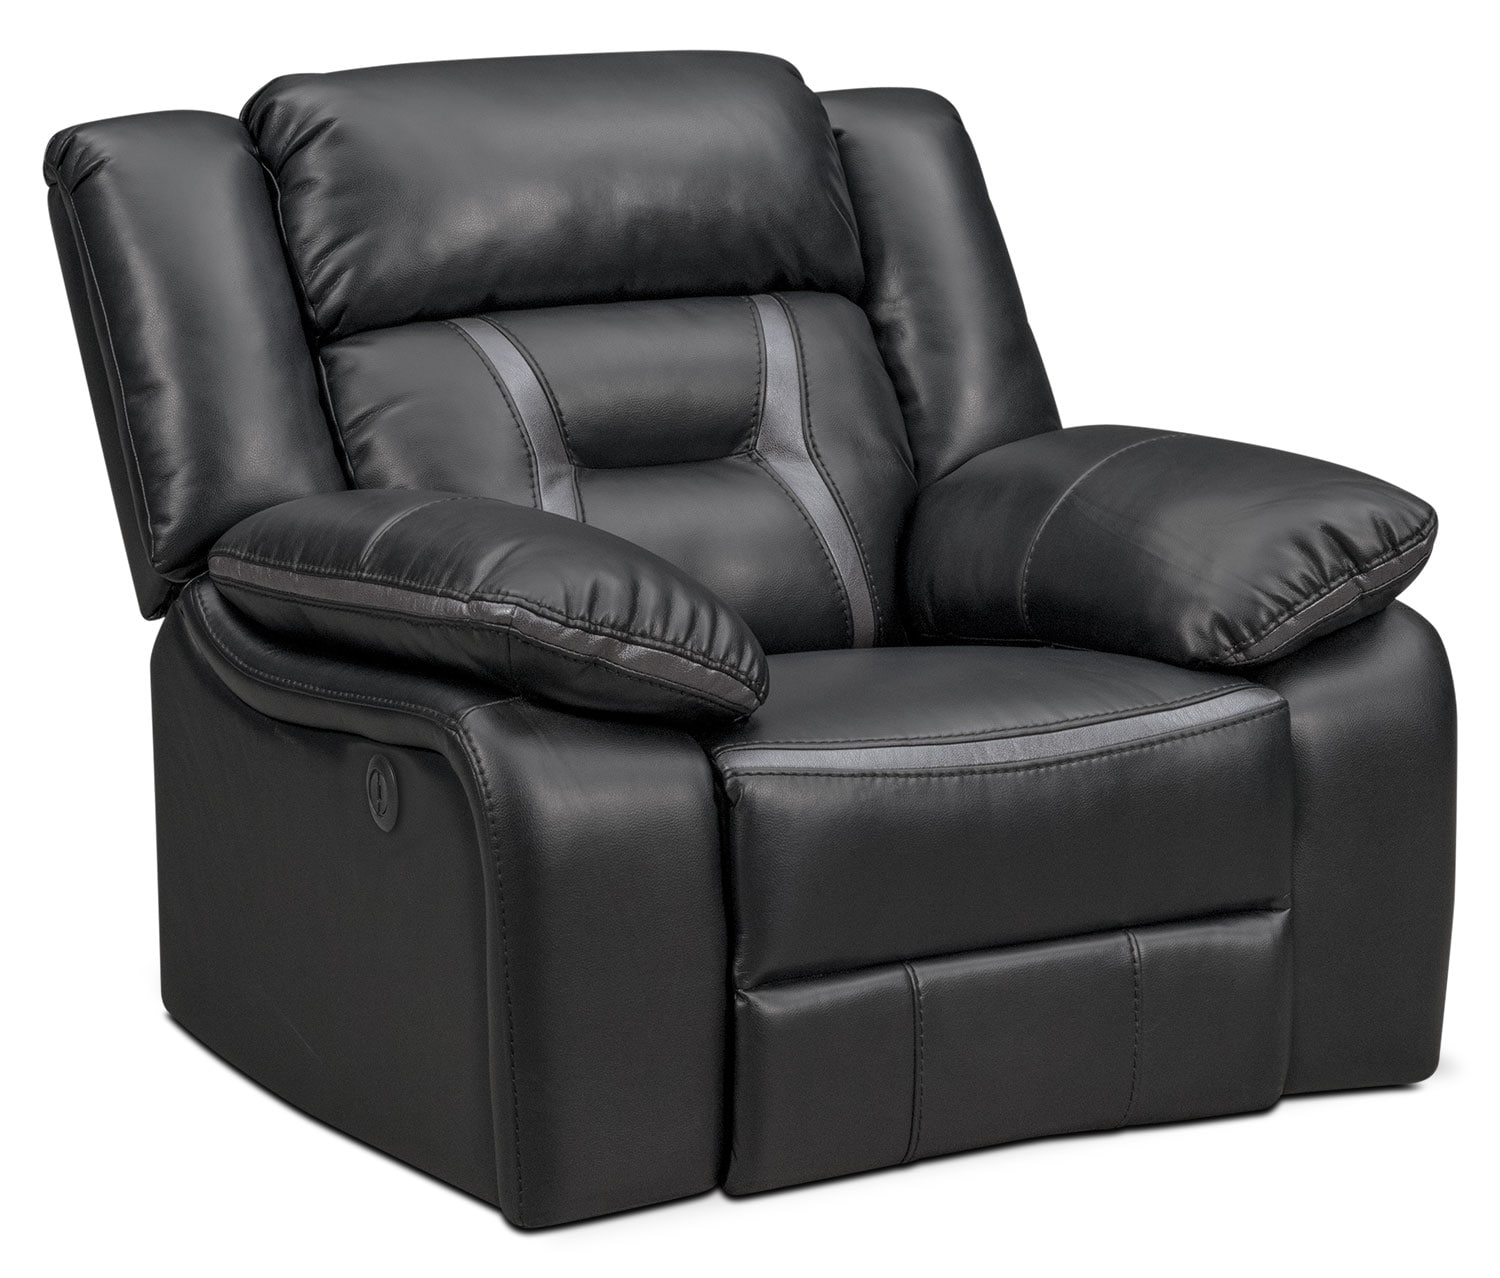 Remi Glider Power Recliner - Black